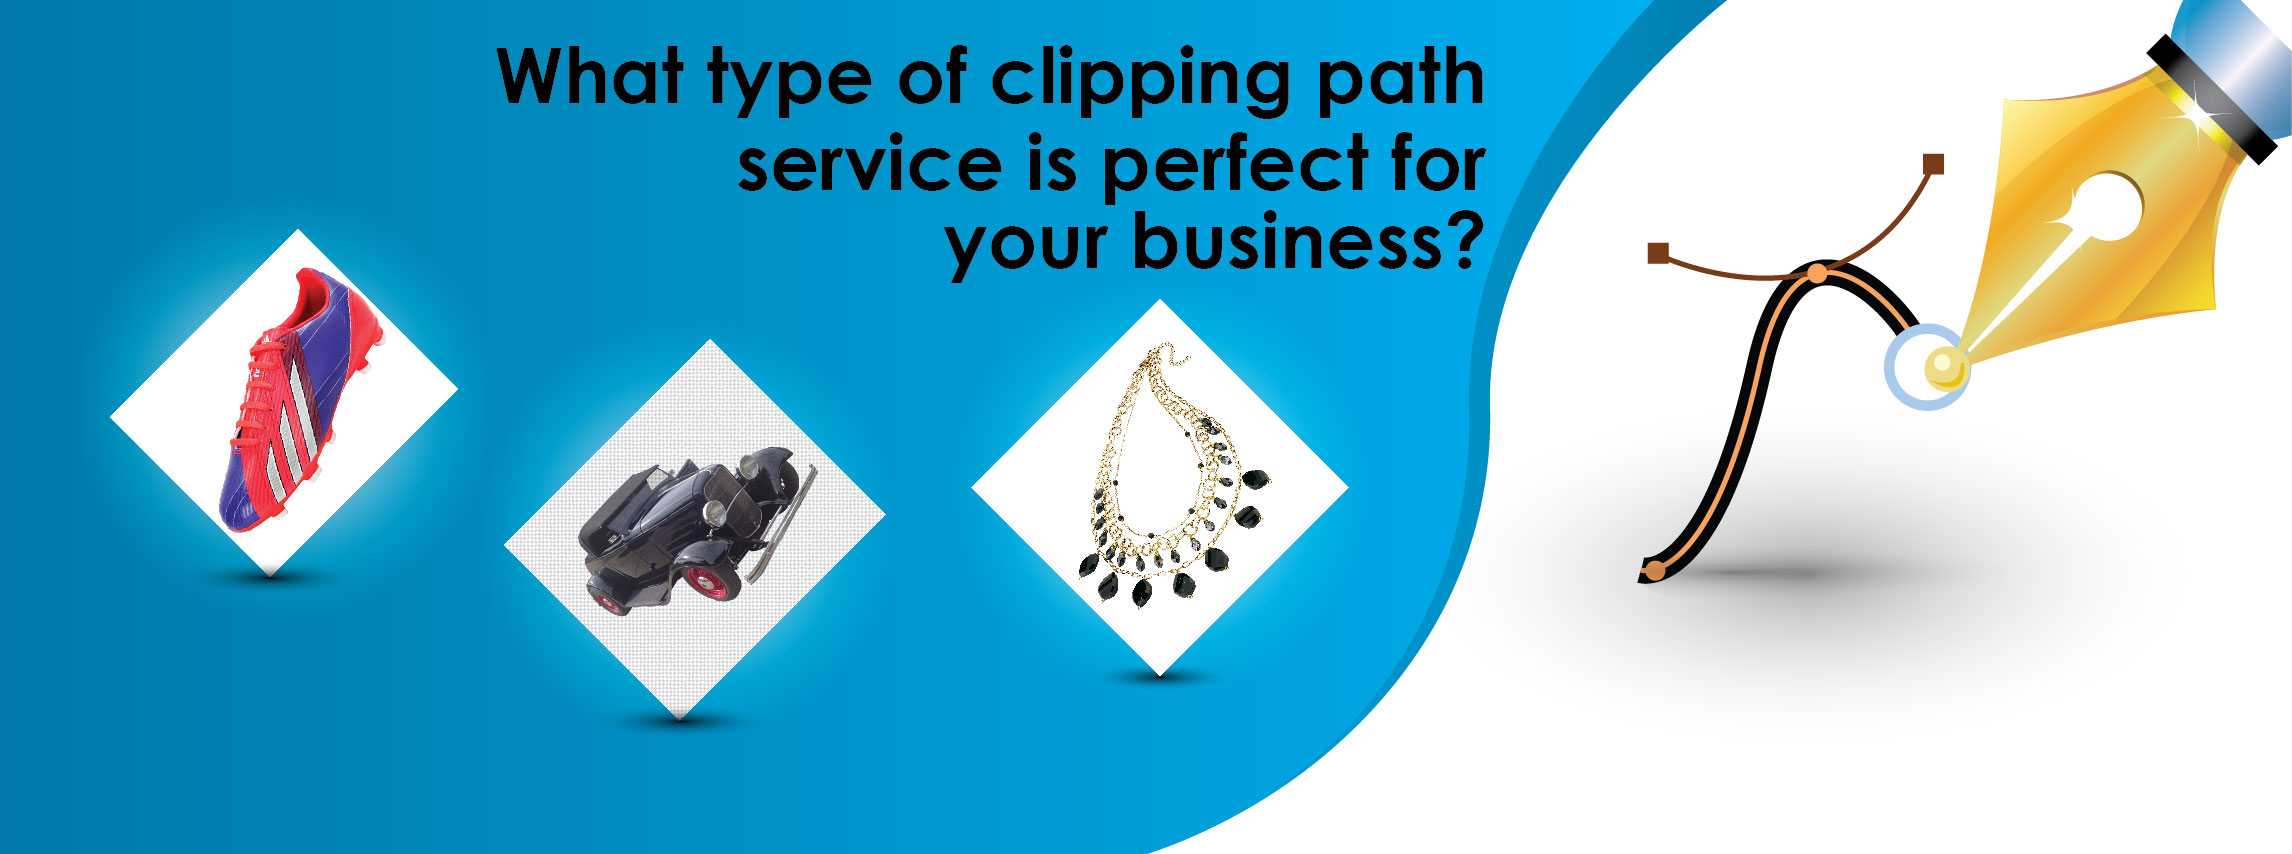 what type of clipping path service is perfect for your business